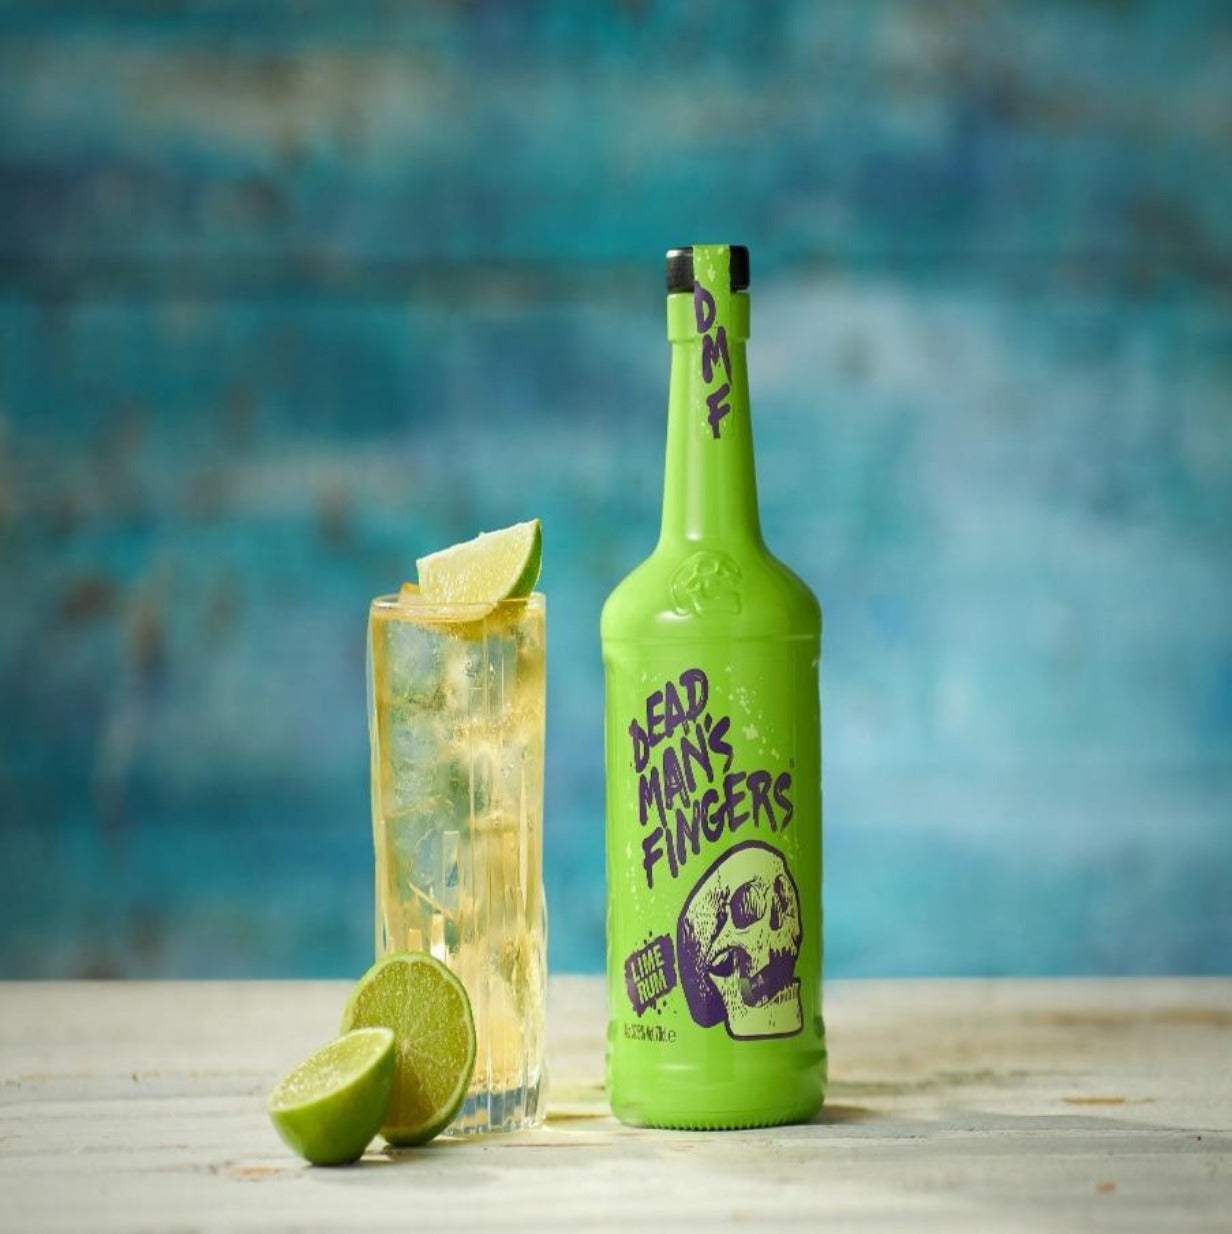 Dead Man's Fingers Lime Rum